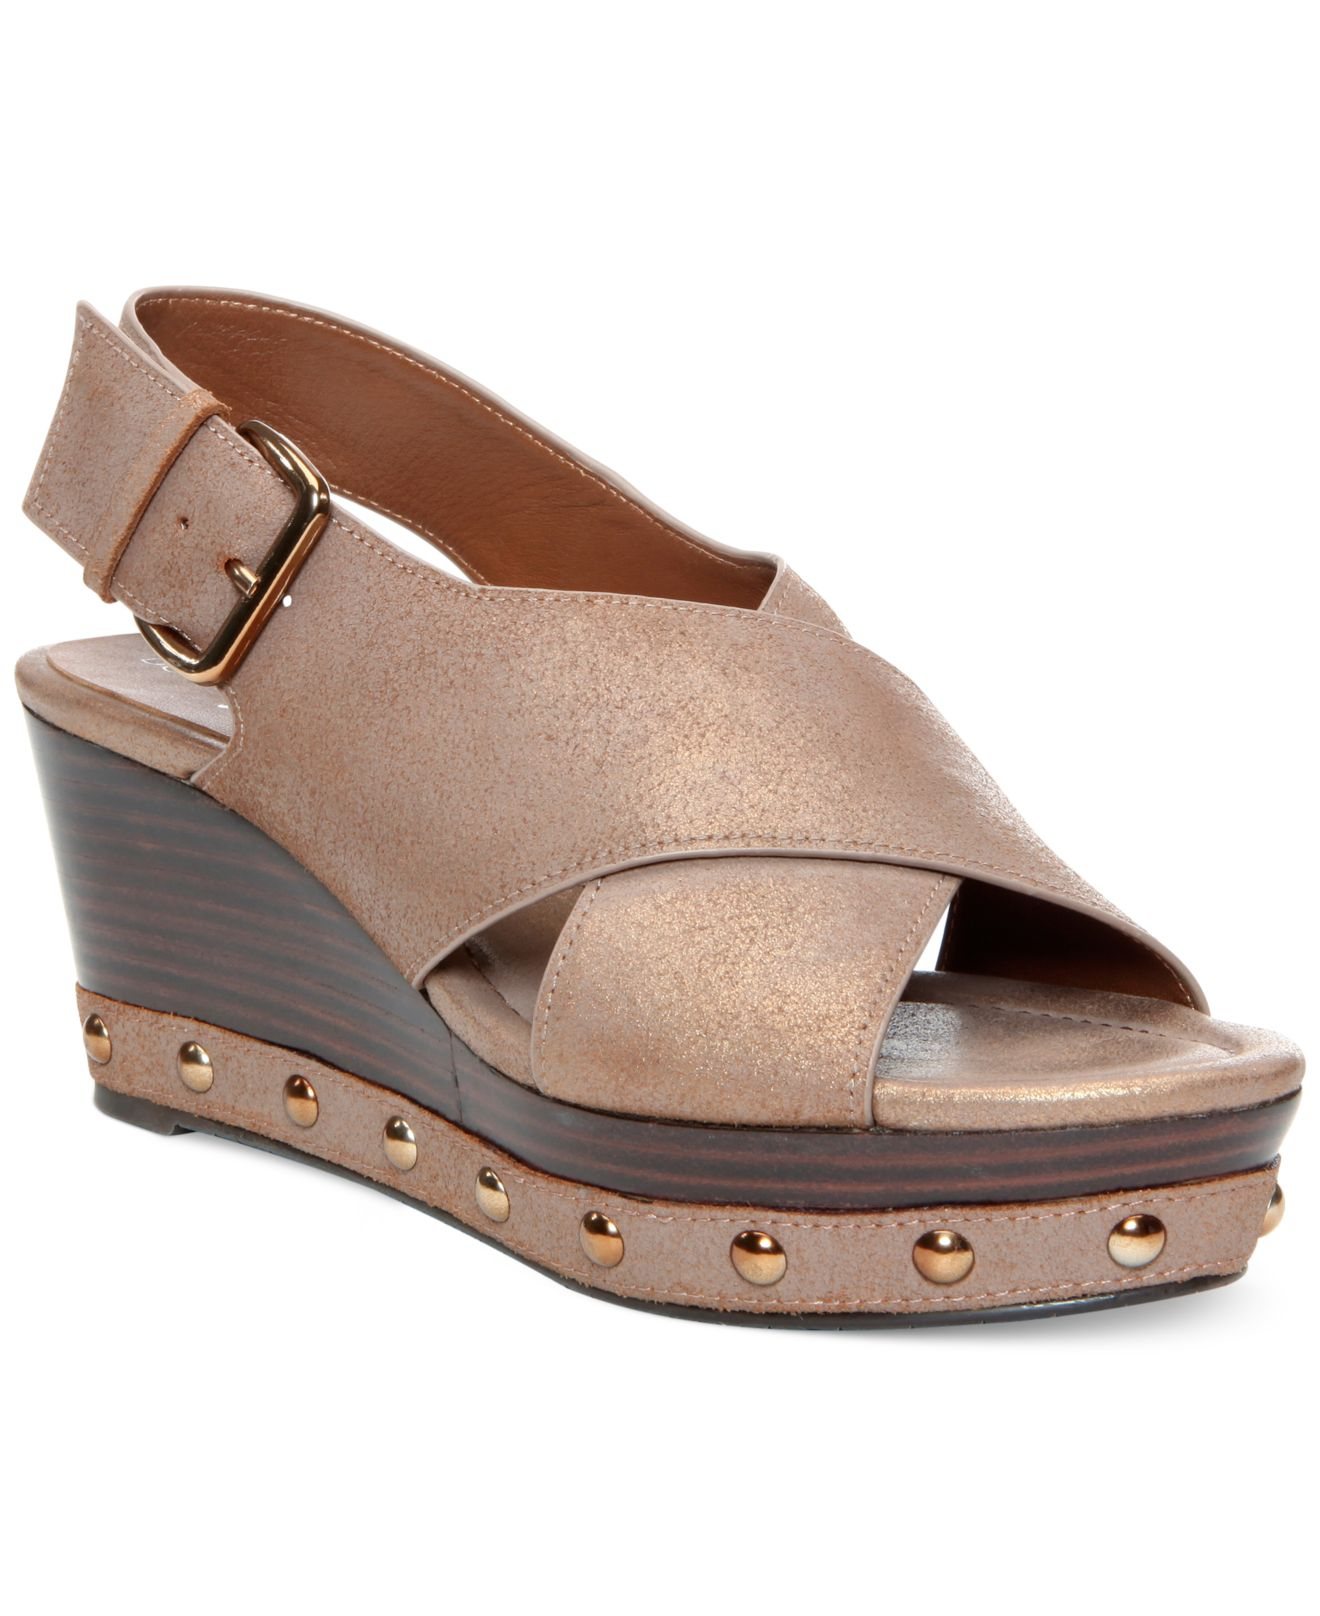 donald pliner outlet bhju  donald pliner wedges